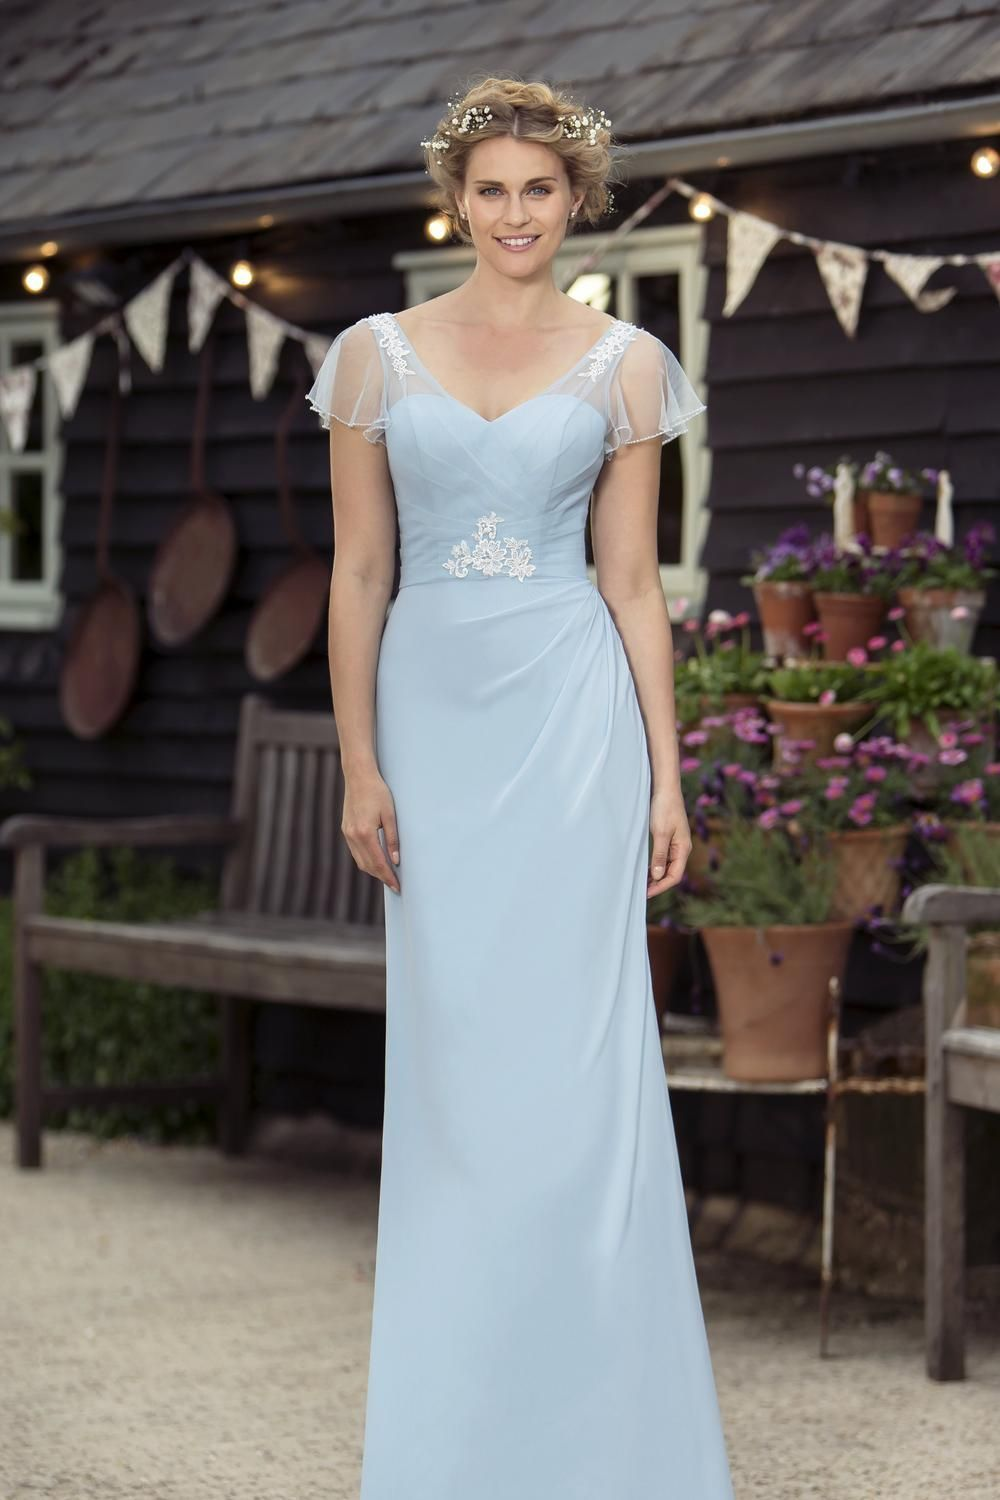 Affordable and cheap bridesmaid dresses e155 essentials by affordable and cheap bridesmaid dresses e155 essentials by true bride ombrellifo Images